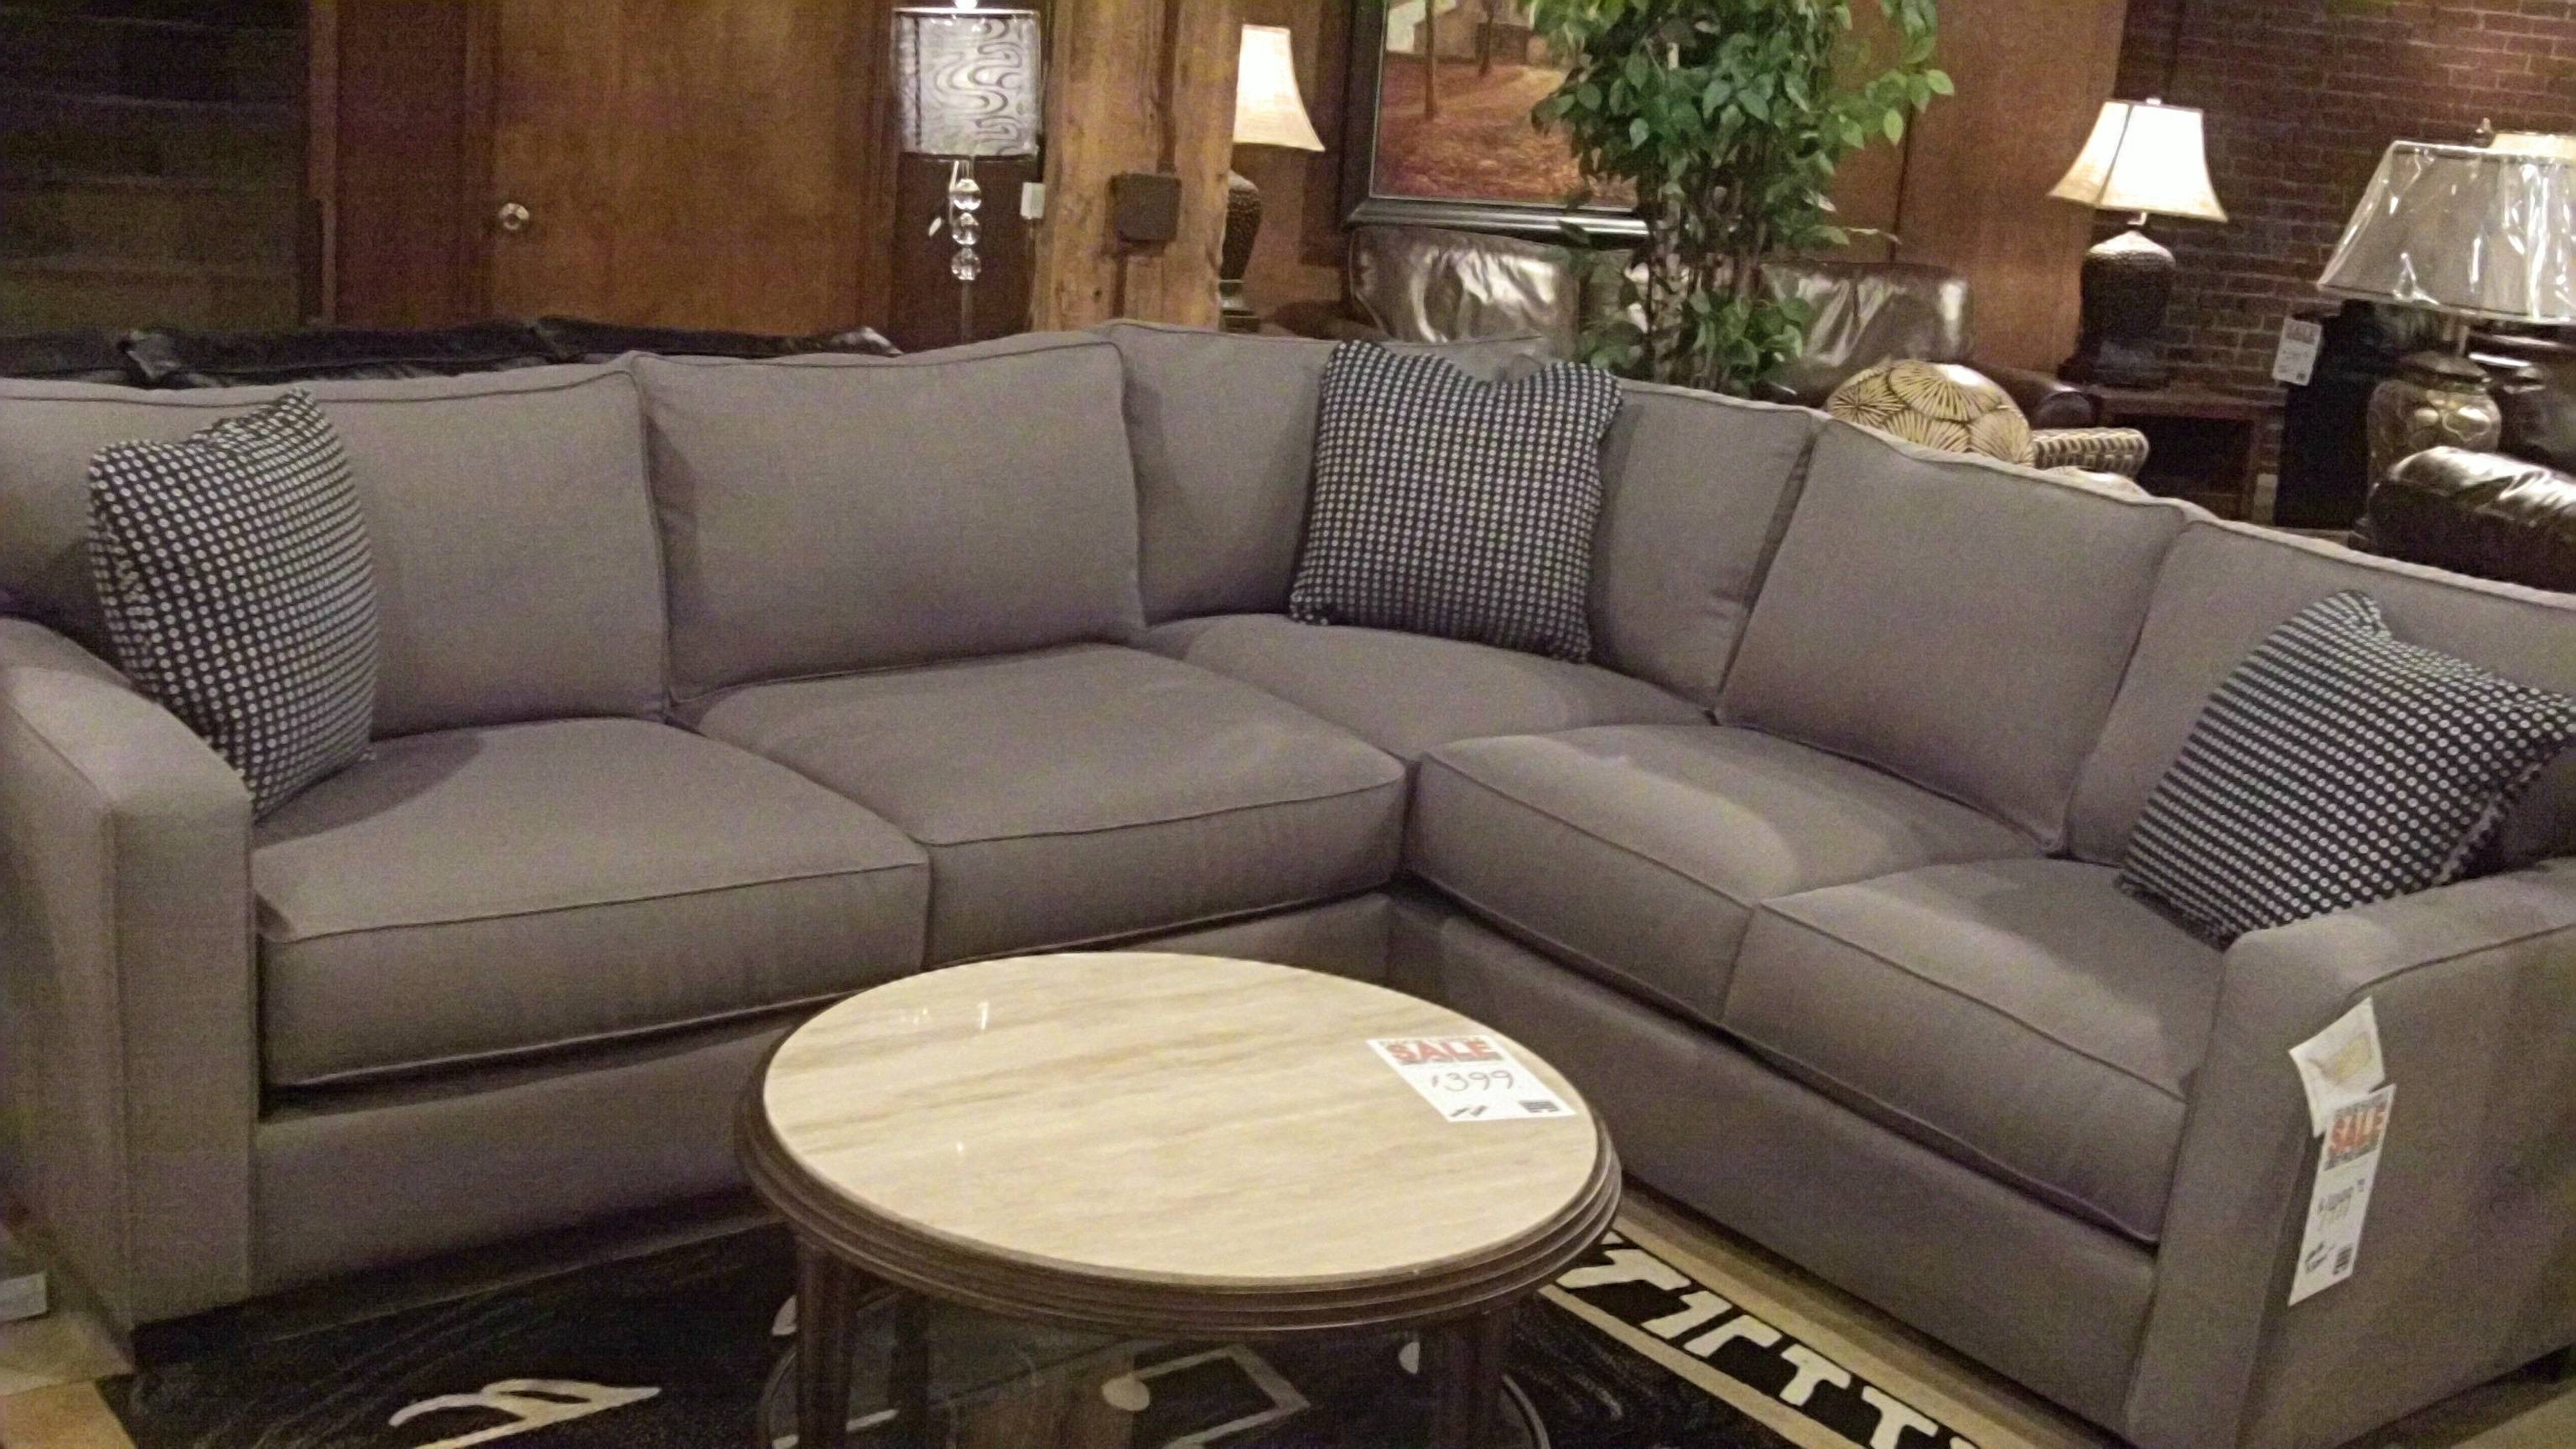 Leather Sectional Sofas San Diego - Slimsectionalsofas for Sectional Sofa San Diego (Image 15 of : sectional couches san diego - Sectionals, Sofas & Couches